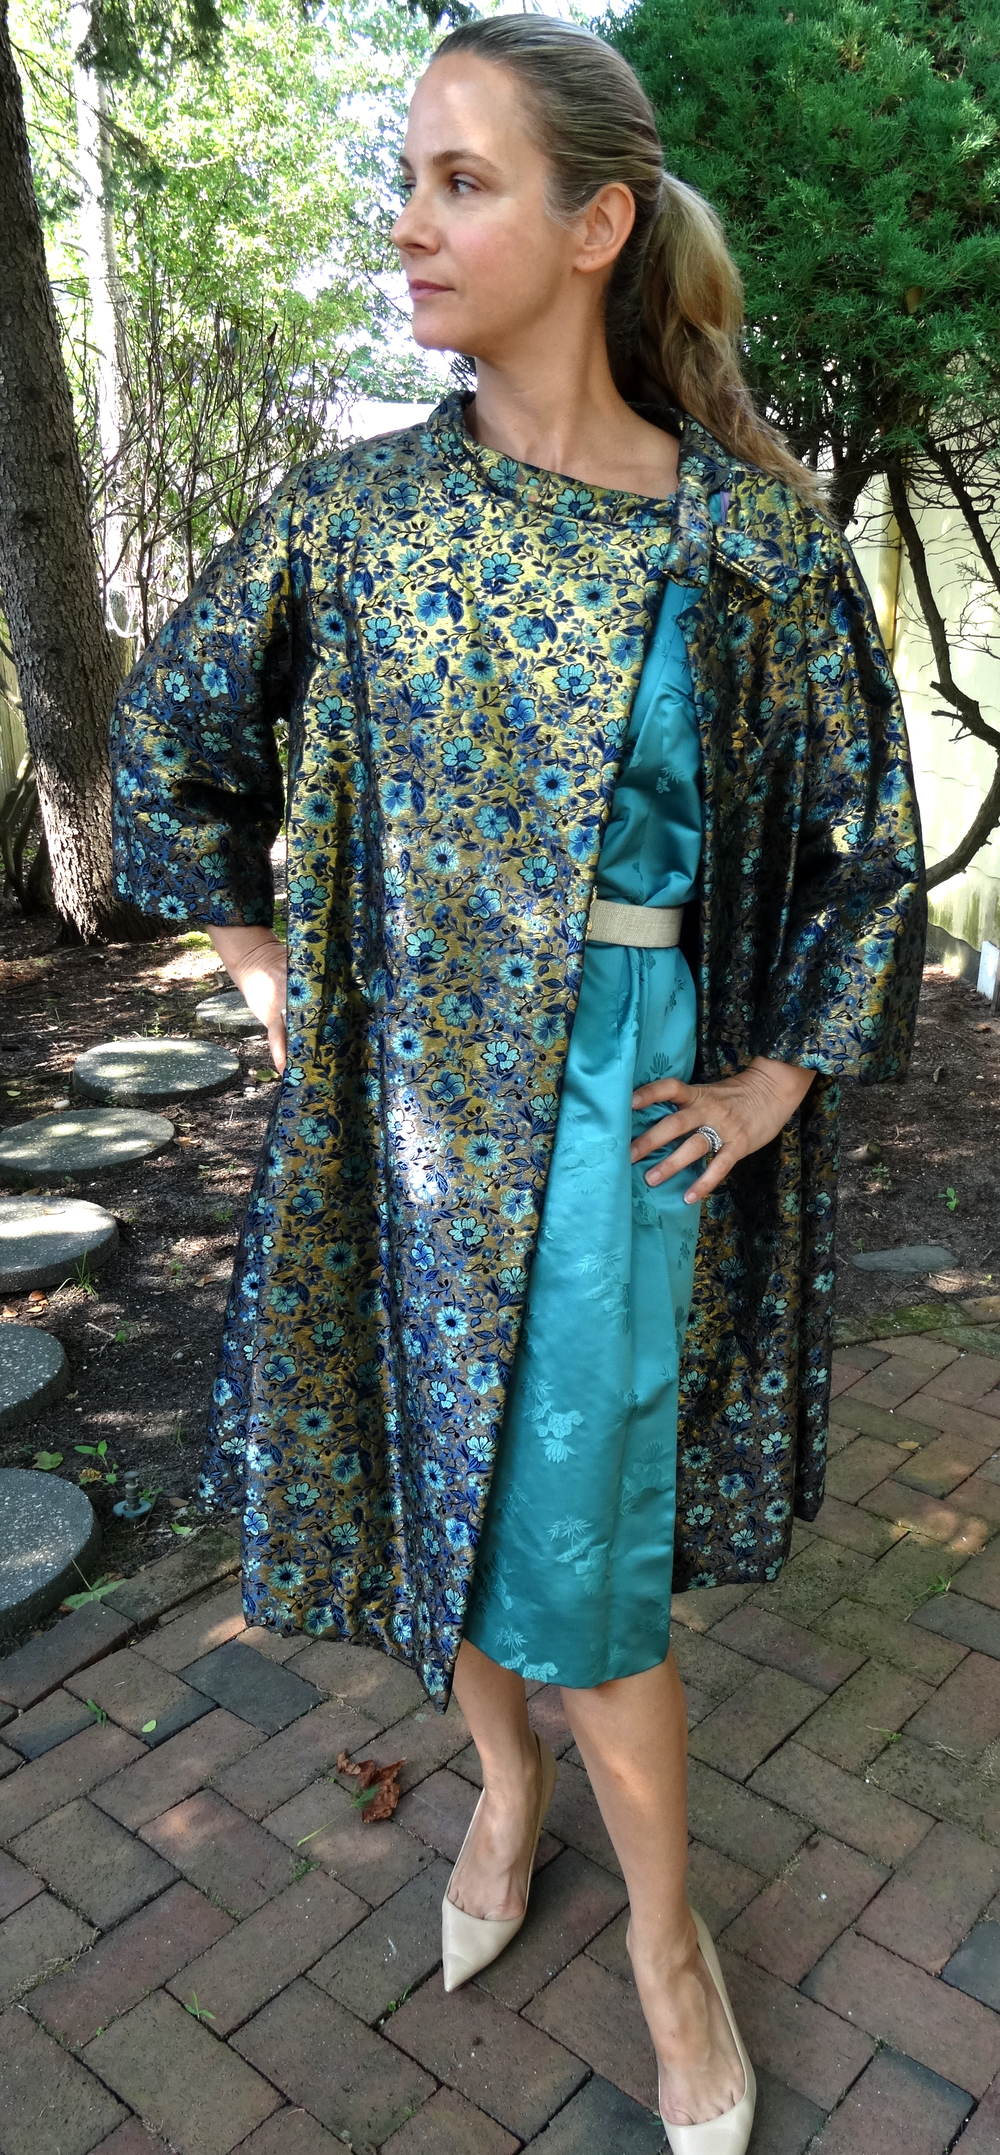 Bespoke teal and gold floral overcoat